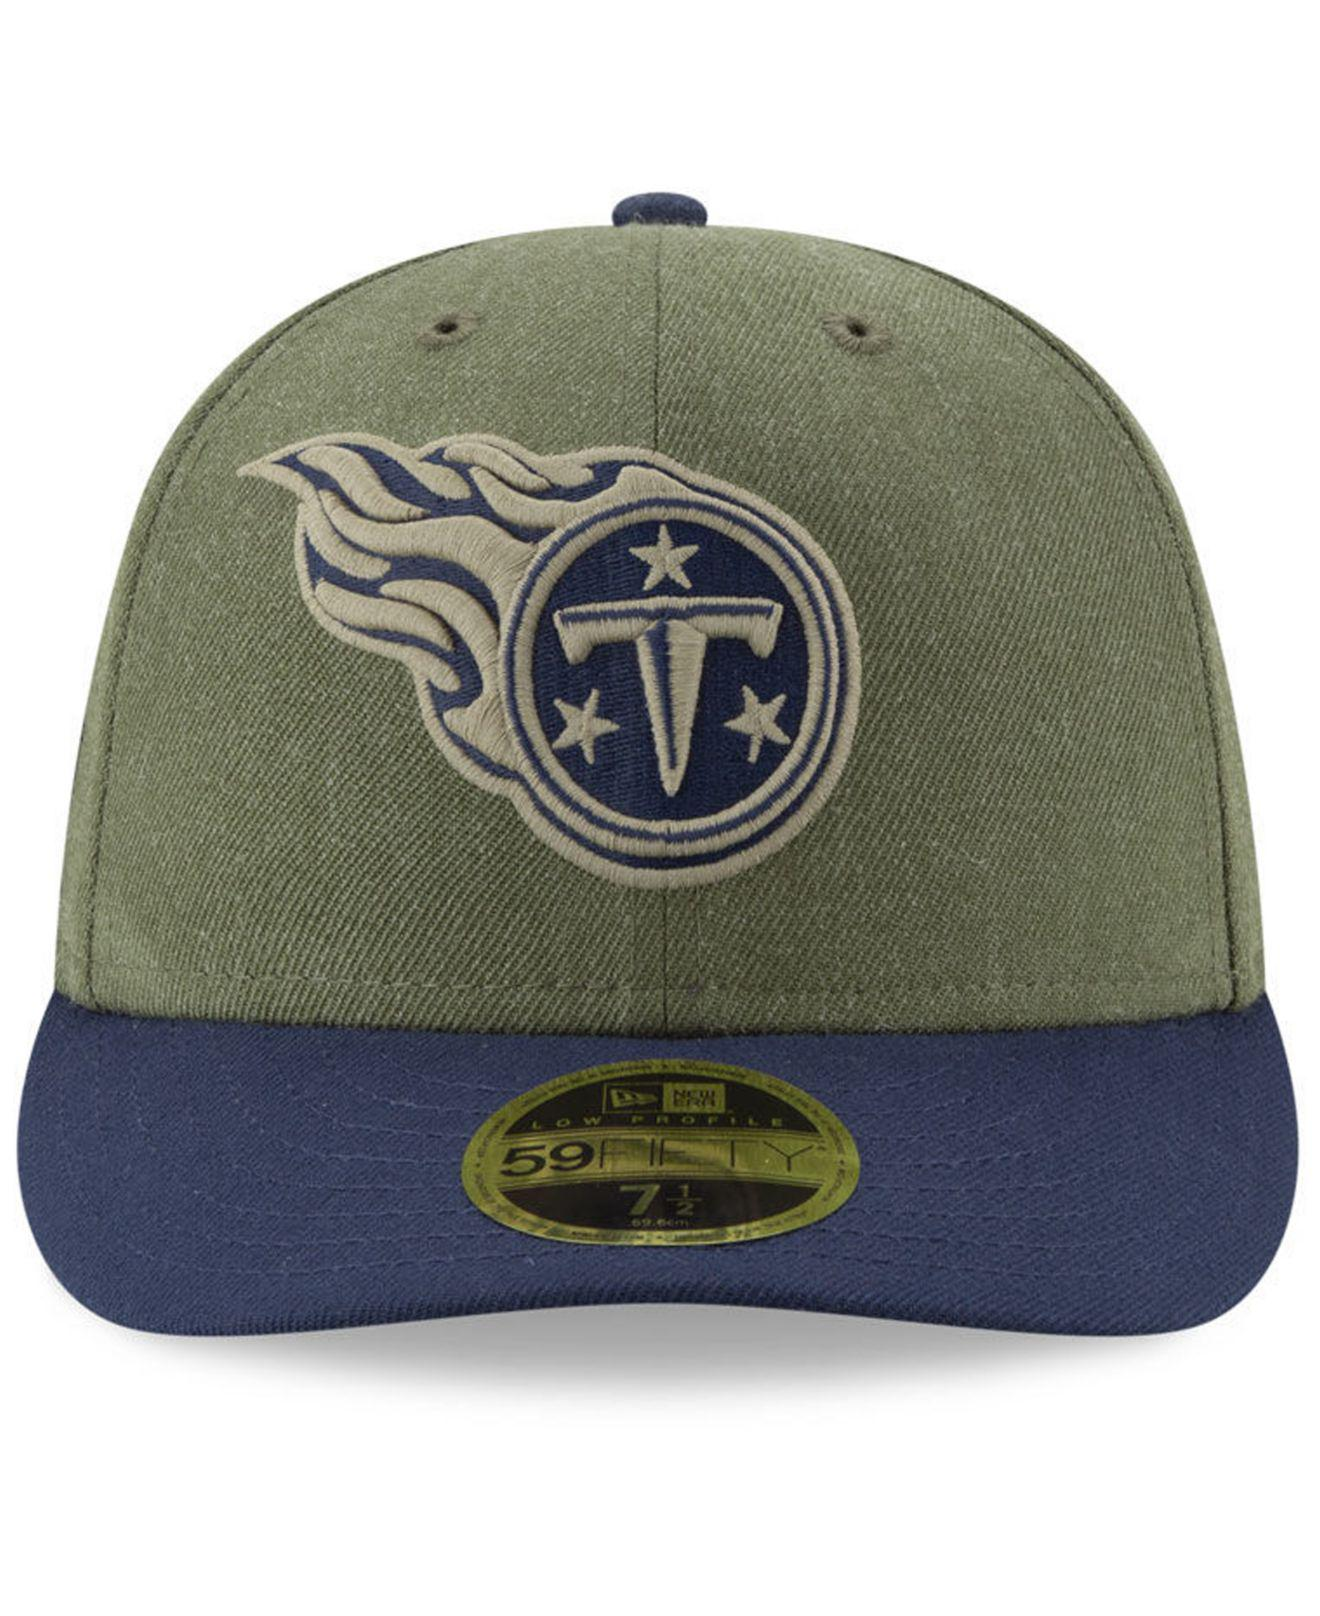 Lyst - Ktz Tennessee Titans Salute To Service Low Profile 59fifty Fitted  Cap 2018 in Green for Men dbdd7cf77